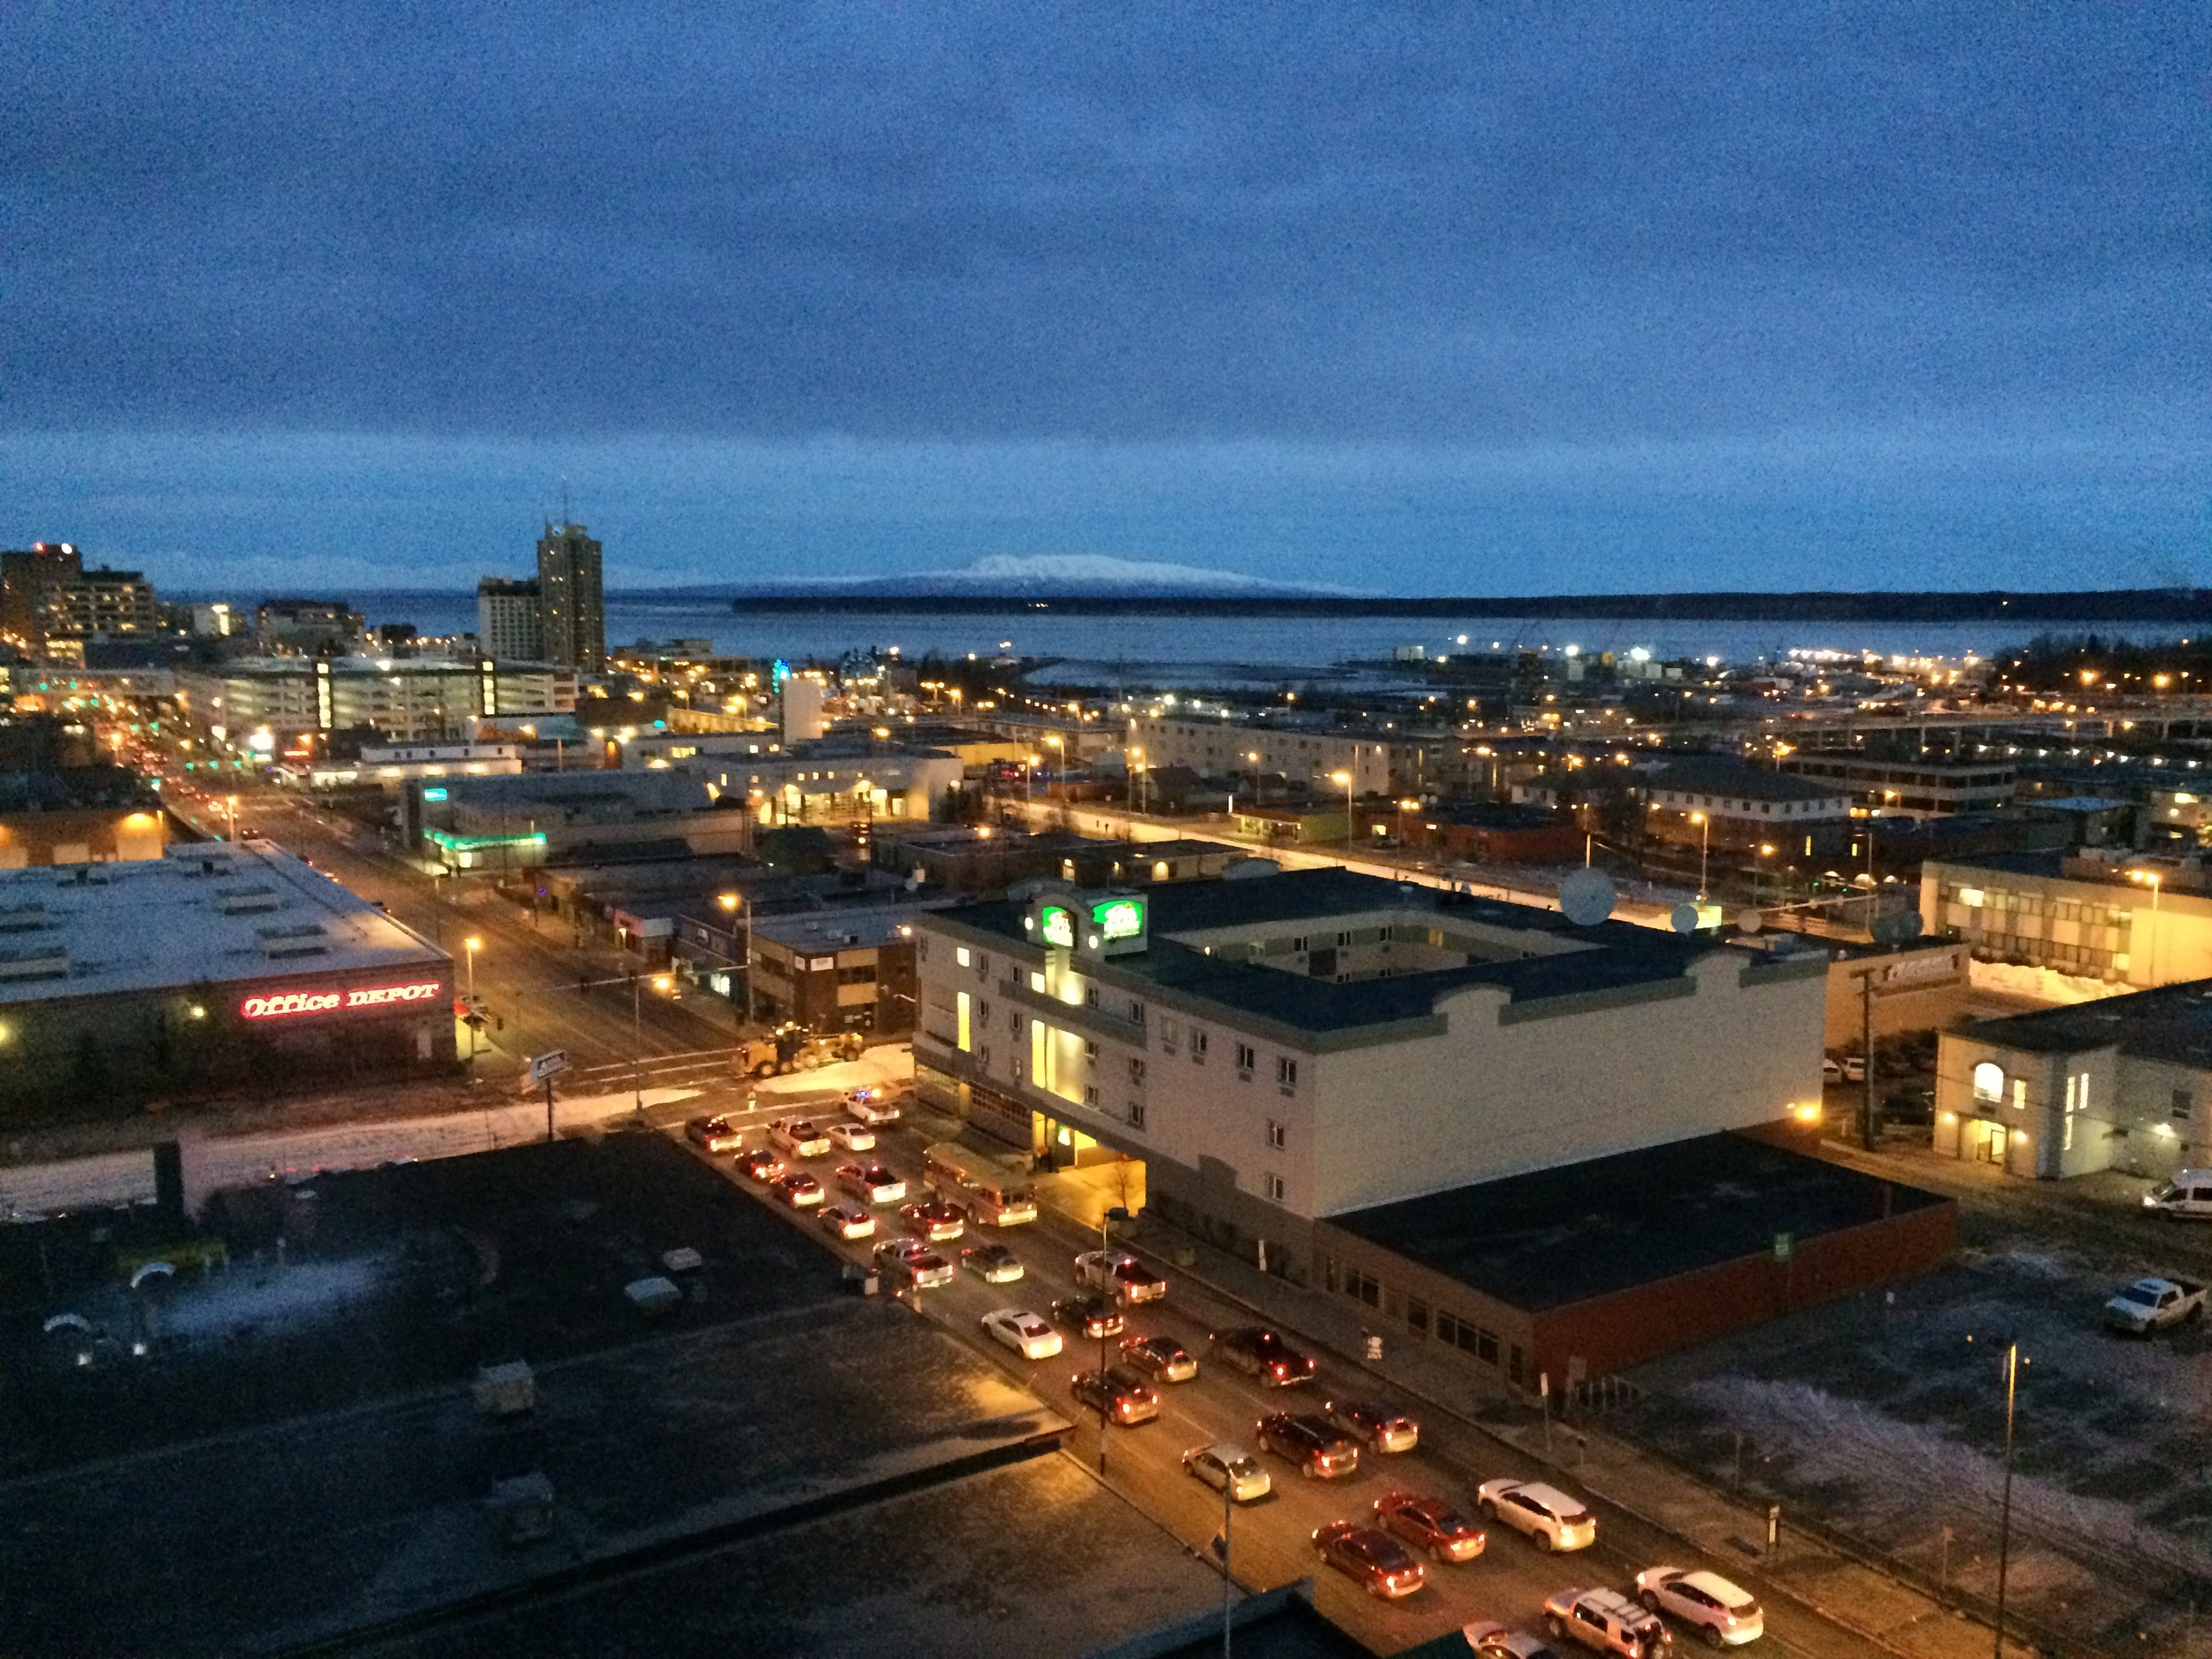 A snowless Anchorage Alaska, being watched over by Sleeping Lady in the distance. Photo taken from the Sheraton Hotel. (Fun fact: My high school prom was held at the Sheraton)